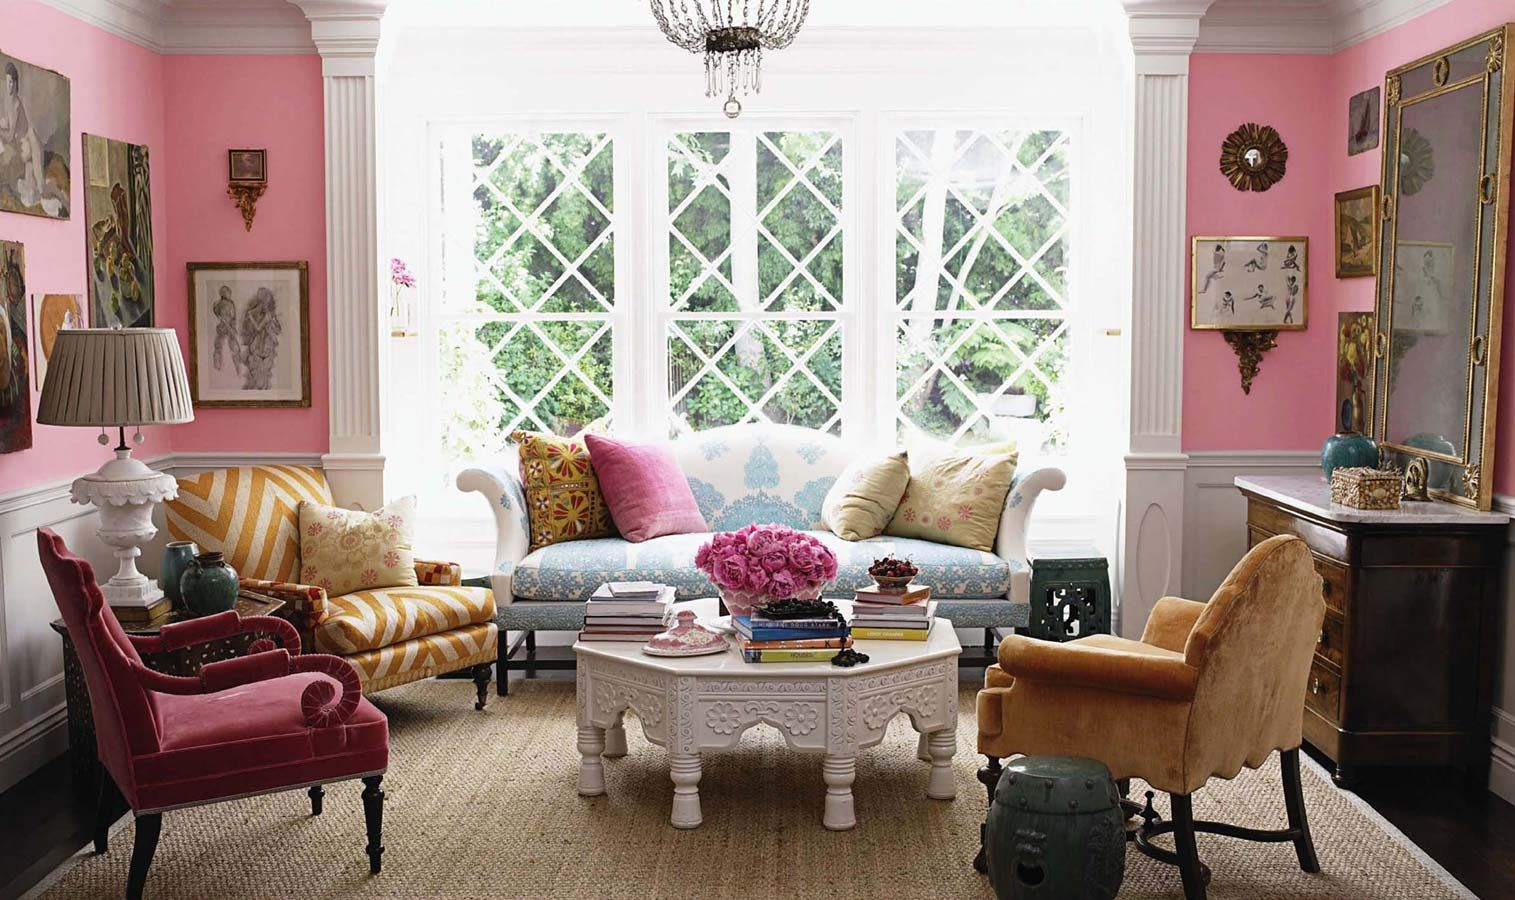 Living Room Eclectic Room Design 1000 images about french eclectic on pinterest living room rooms and london house